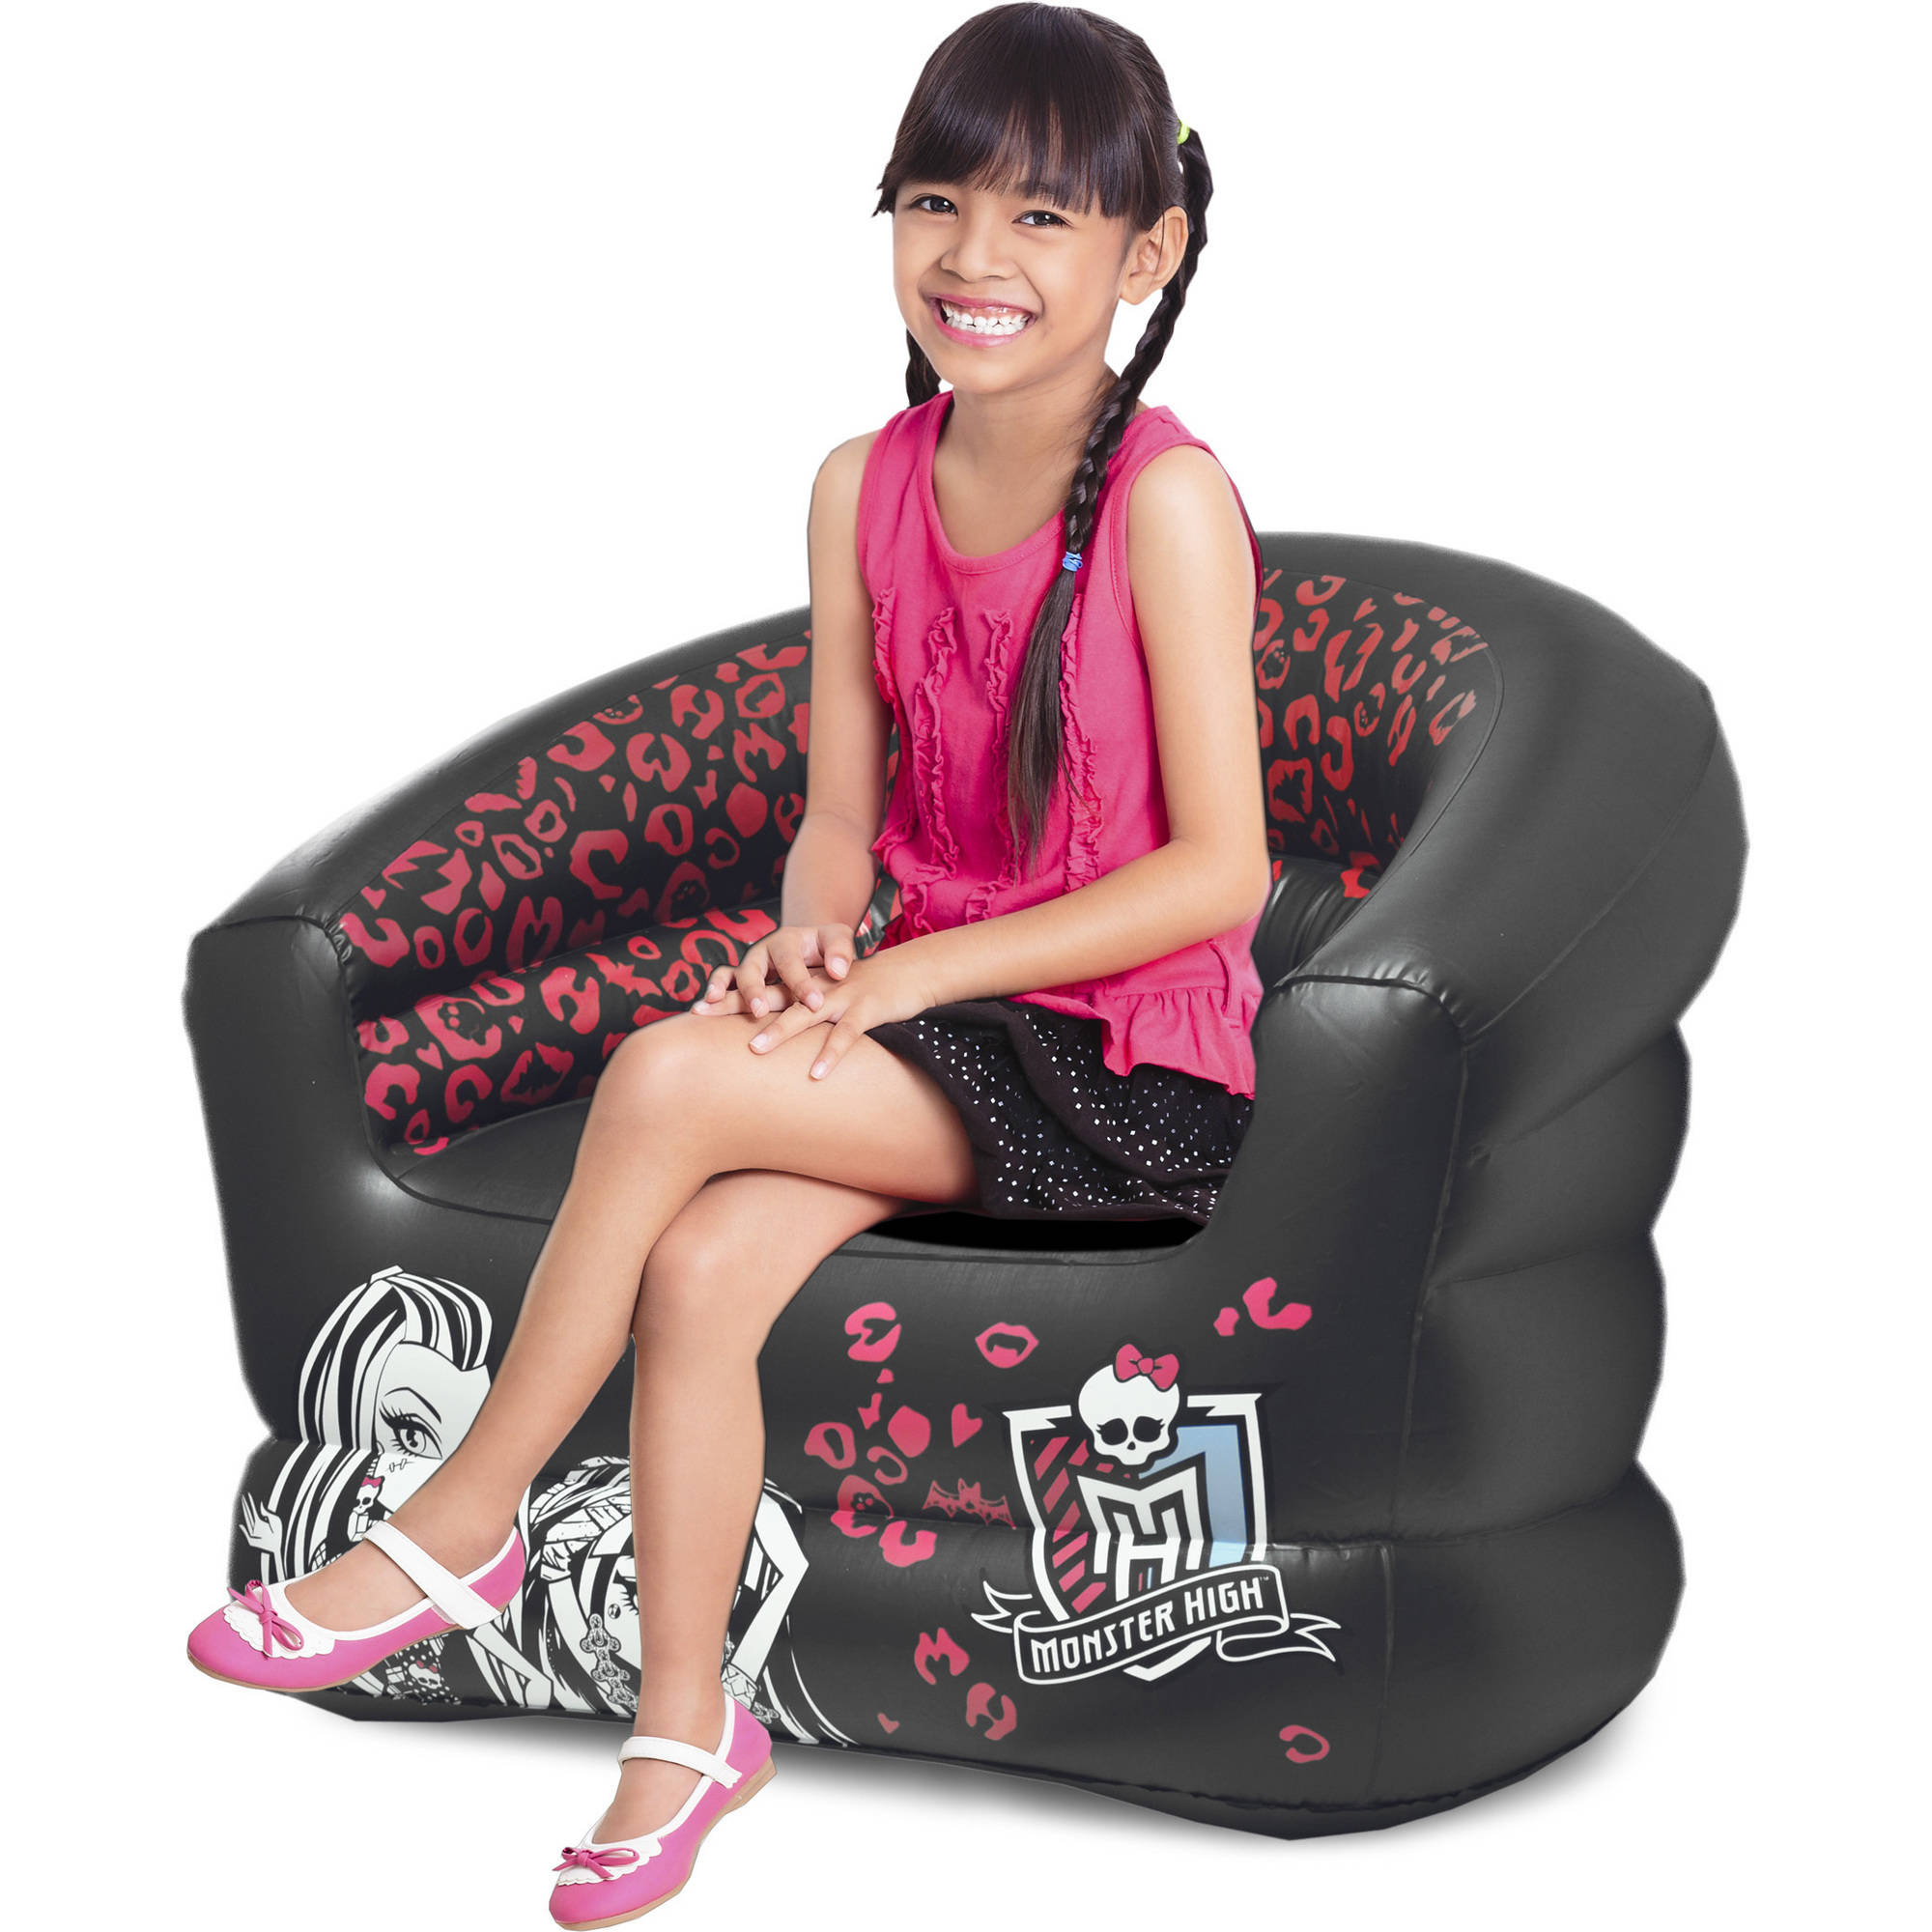 Monster High Oversized Inflatable Chair